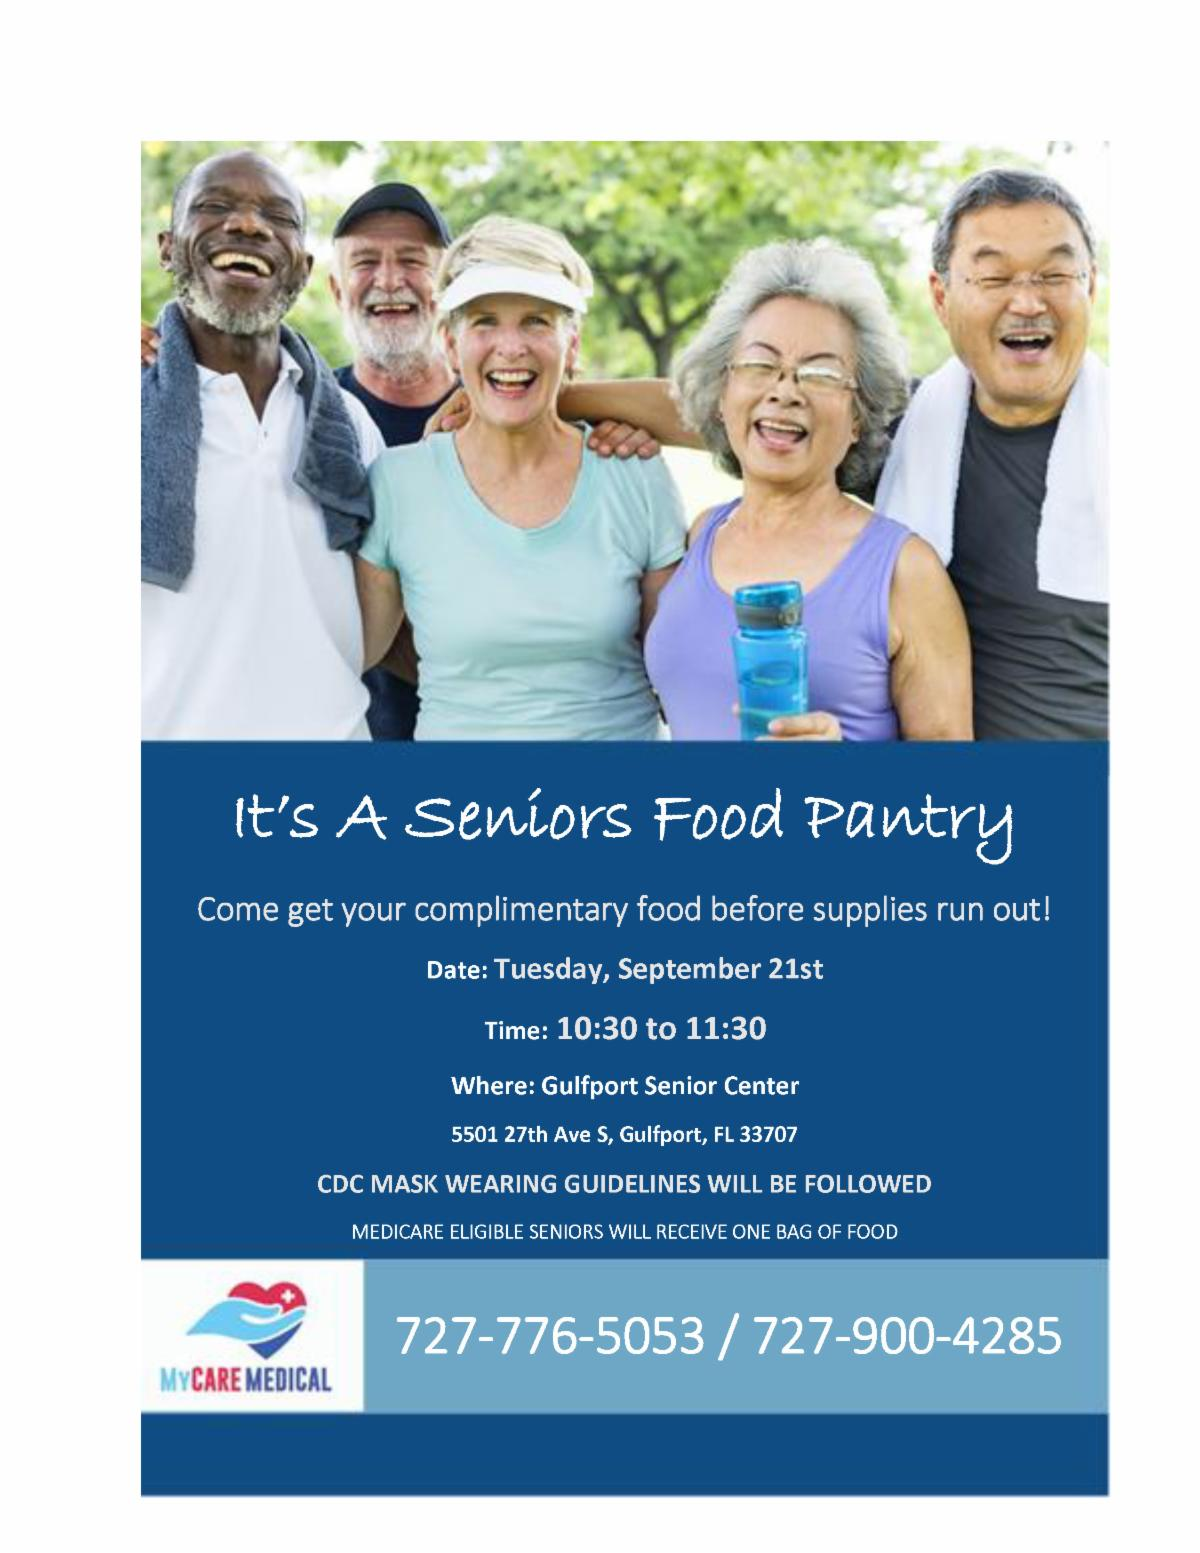 Seniors food pantry flyer. Picture of people smiling.